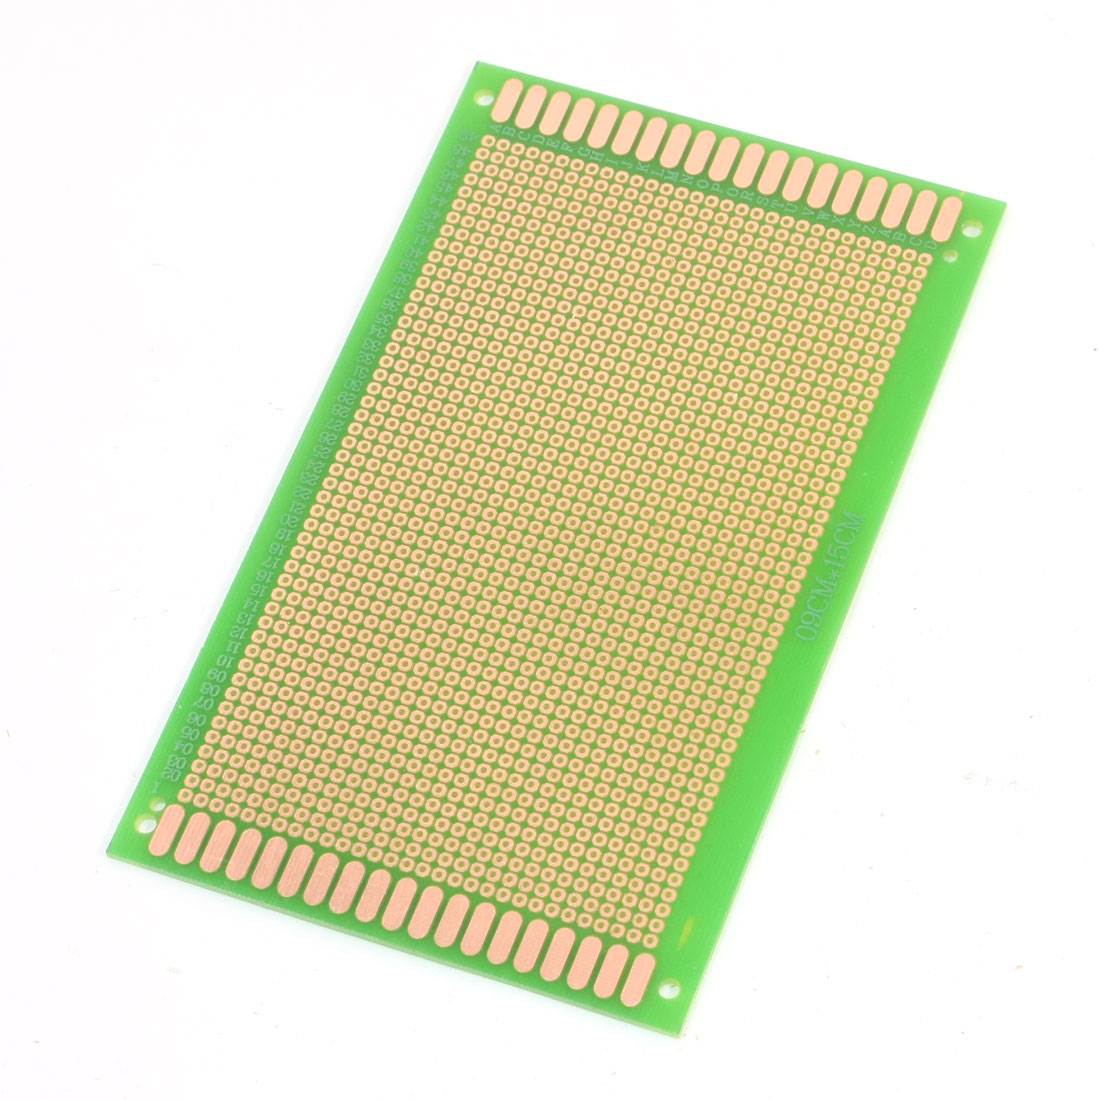 Electronic DIY Universal Single Side Prototype Matrix Copper Plated Carbon Fiber PCB Board 15cm x 9cm